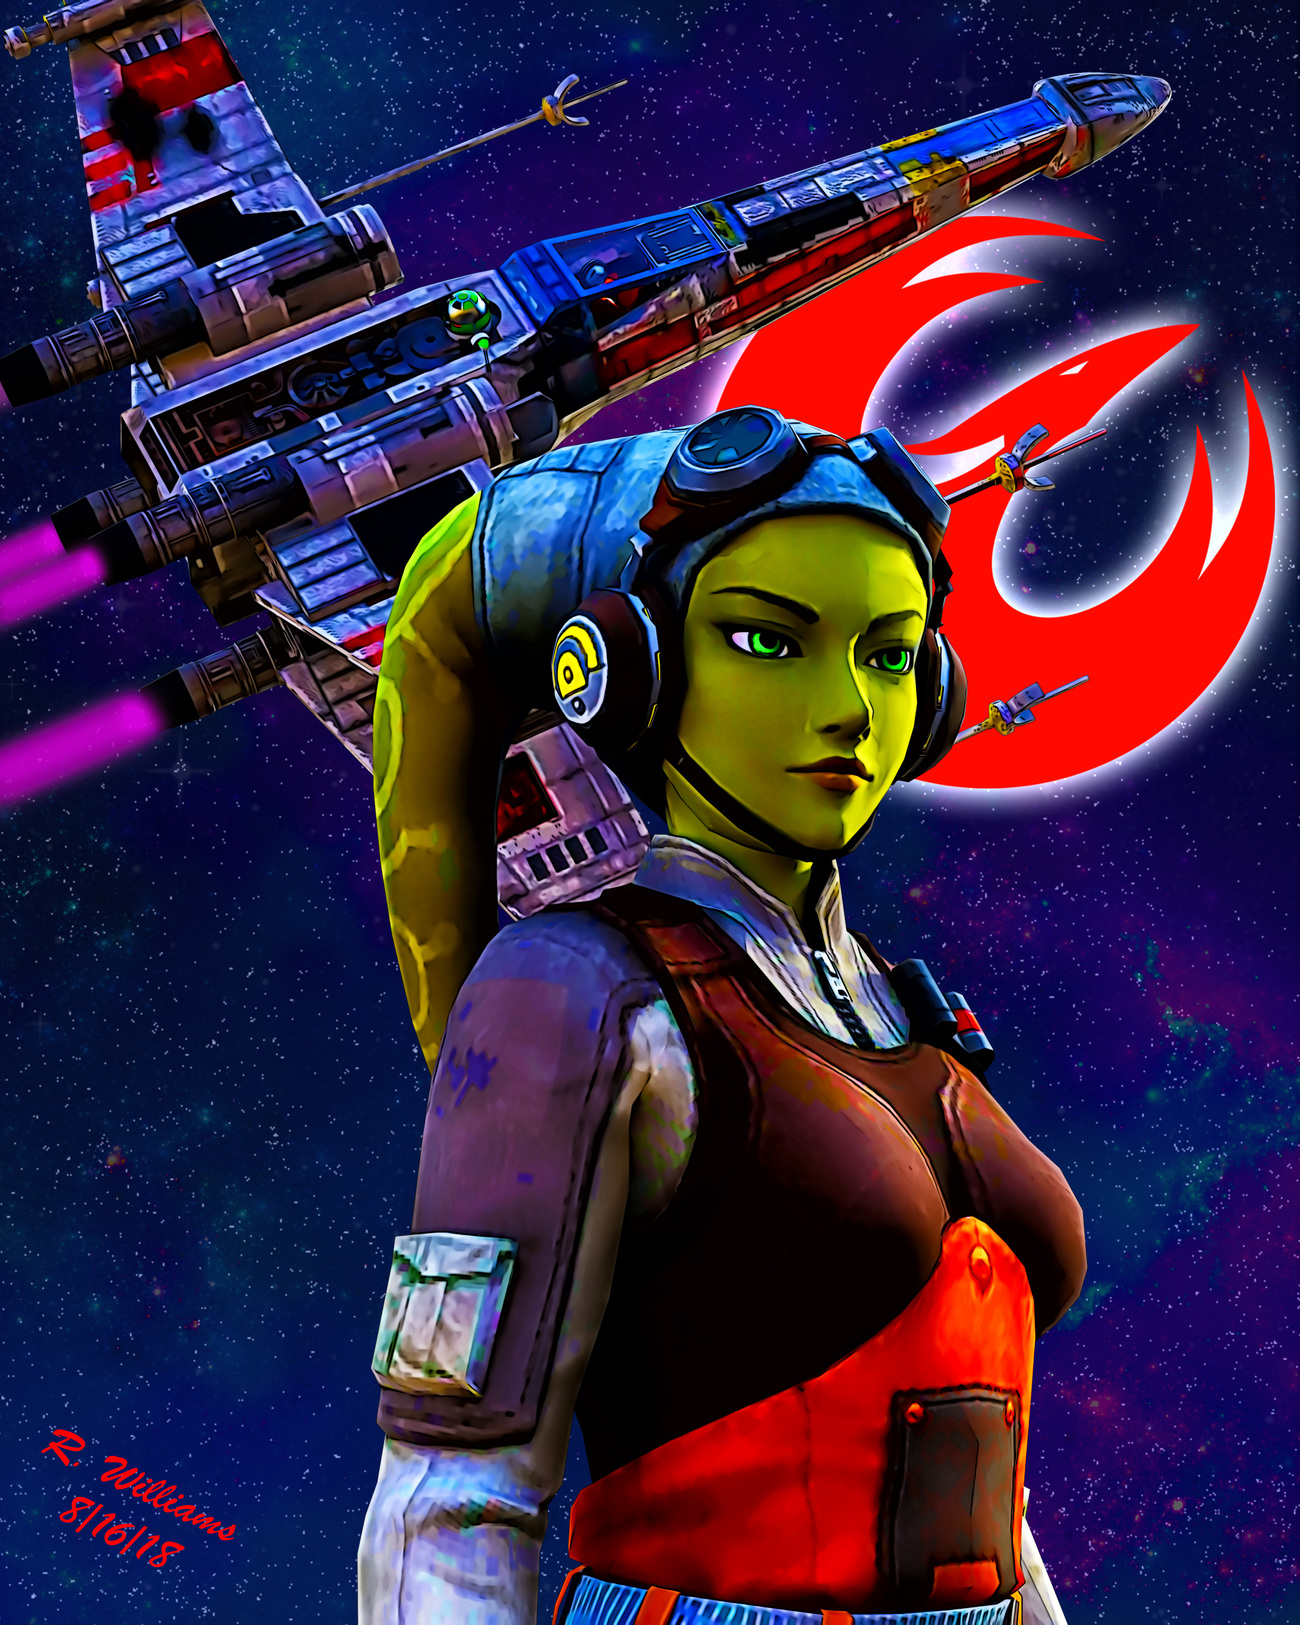 Star Wars Rebels: Hera